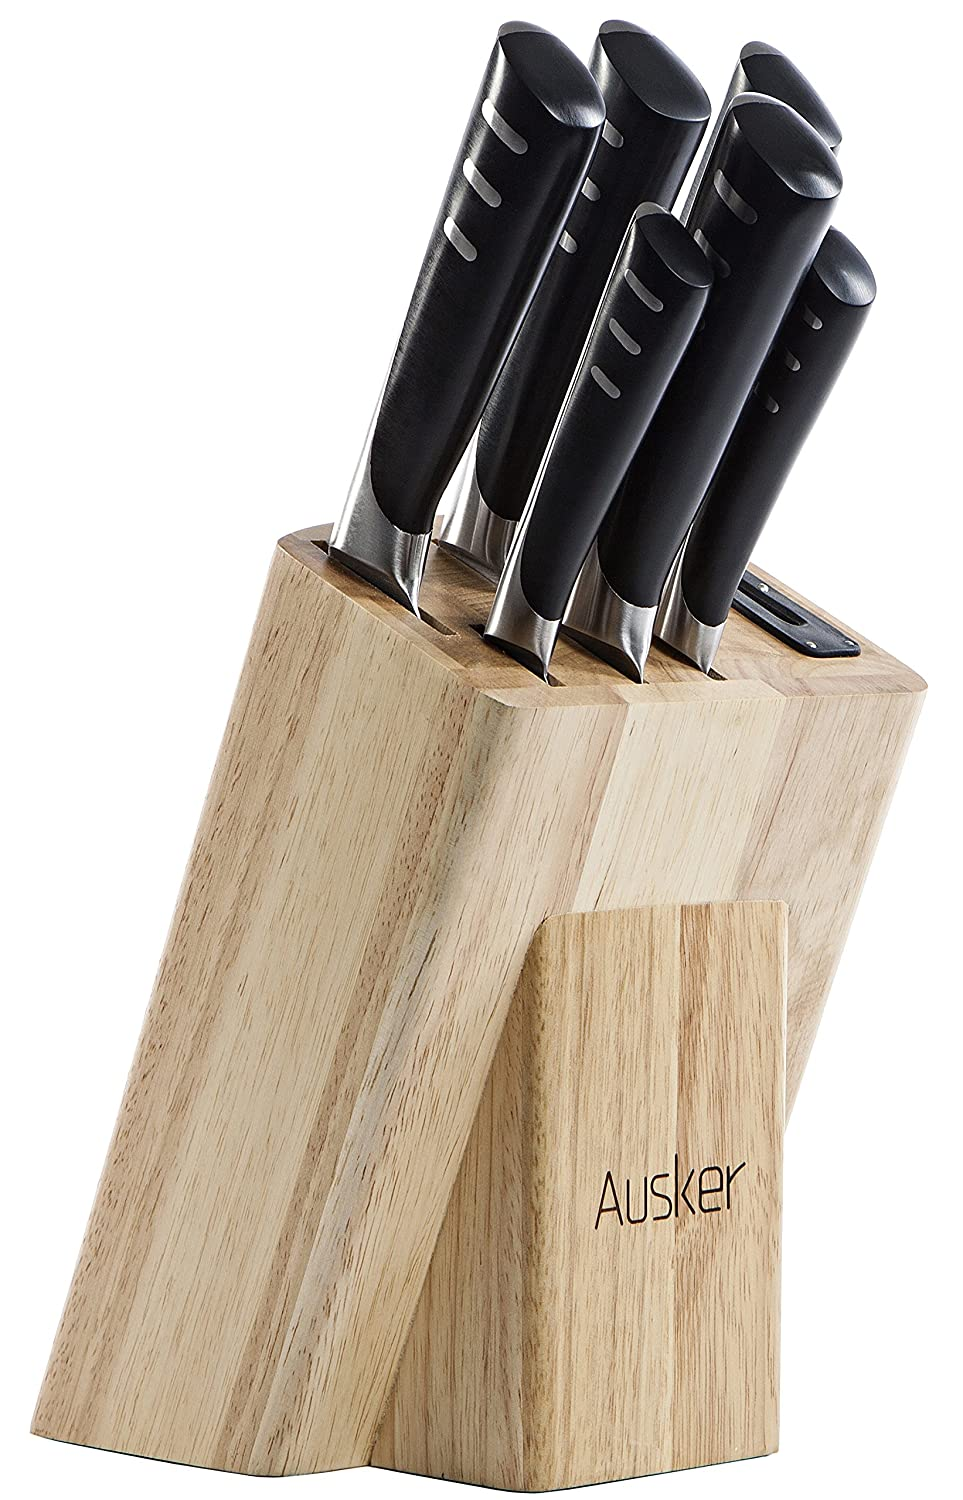 ausker stainless steel kitchen knife set with sharpener wood